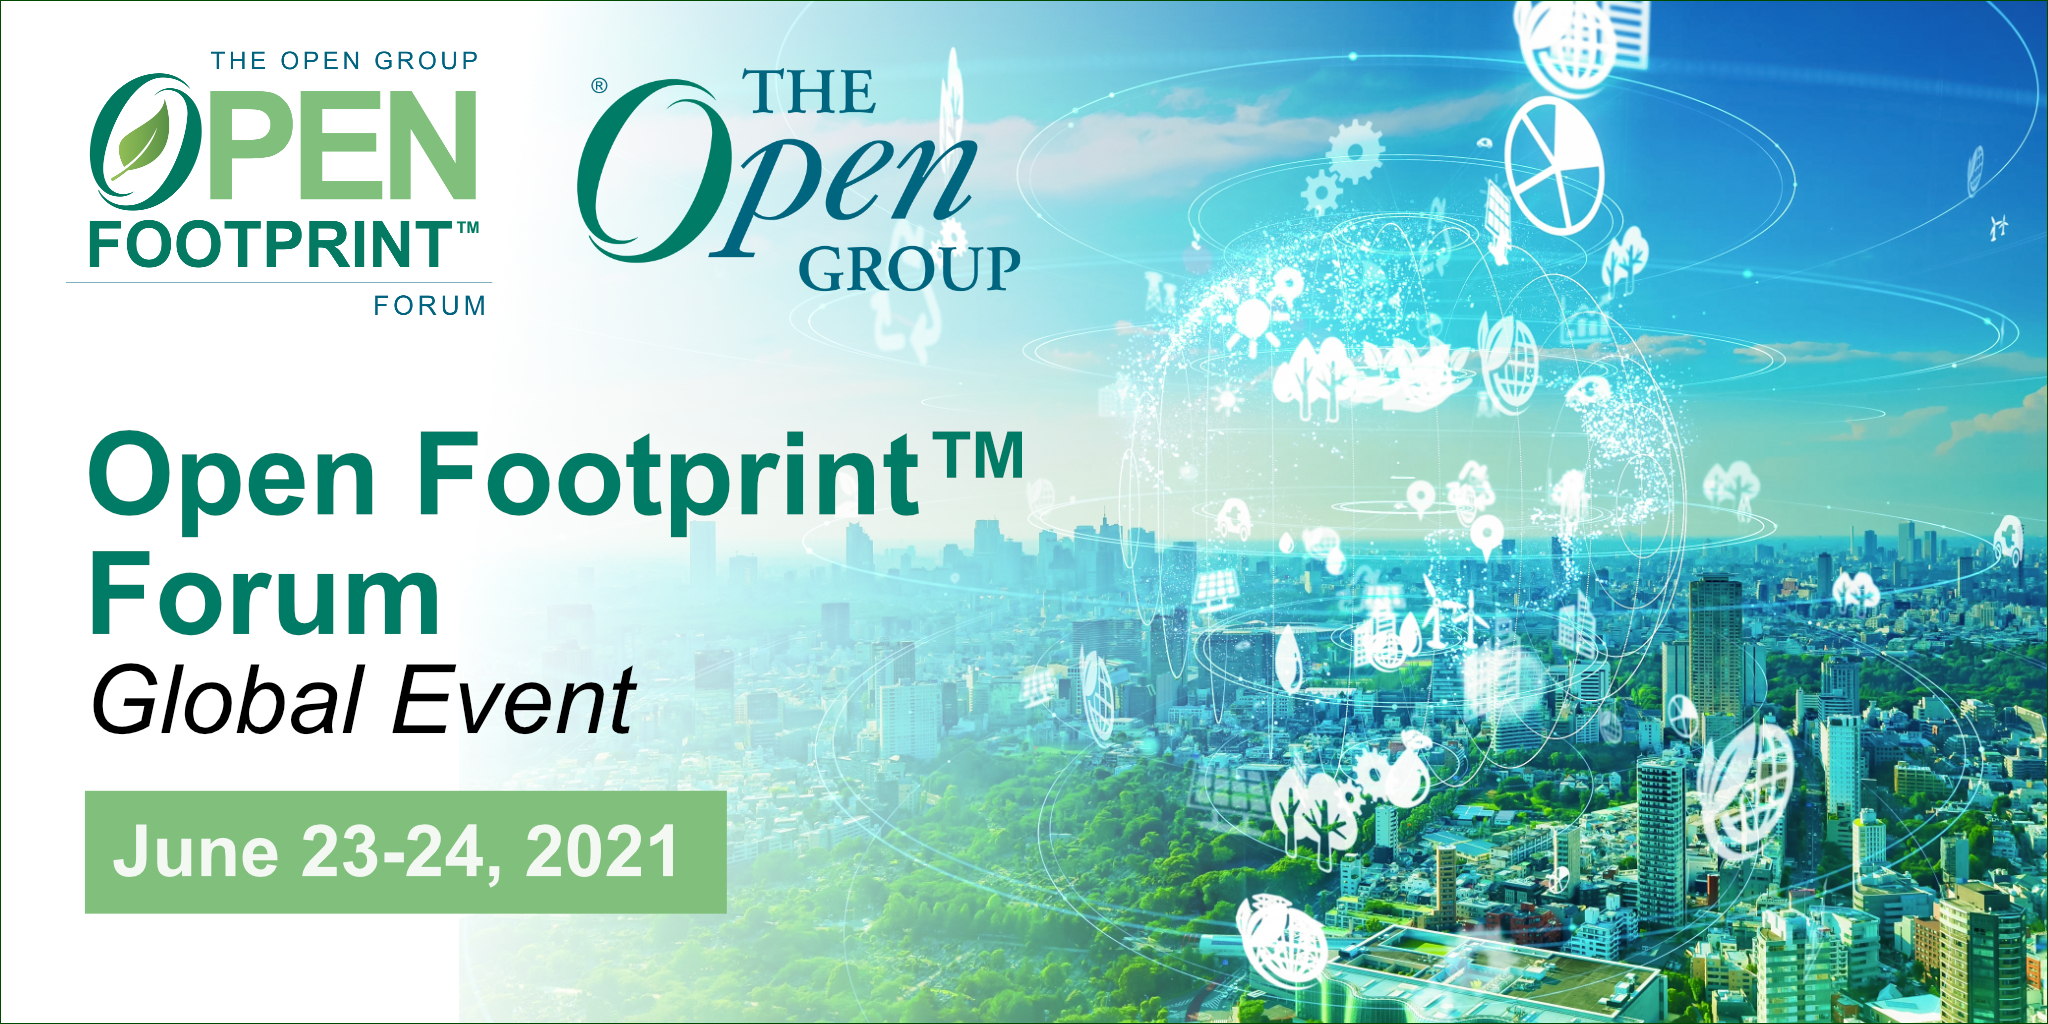 Data Gumbo Presents at The Open Group Open Footprint™ Forum Global Event